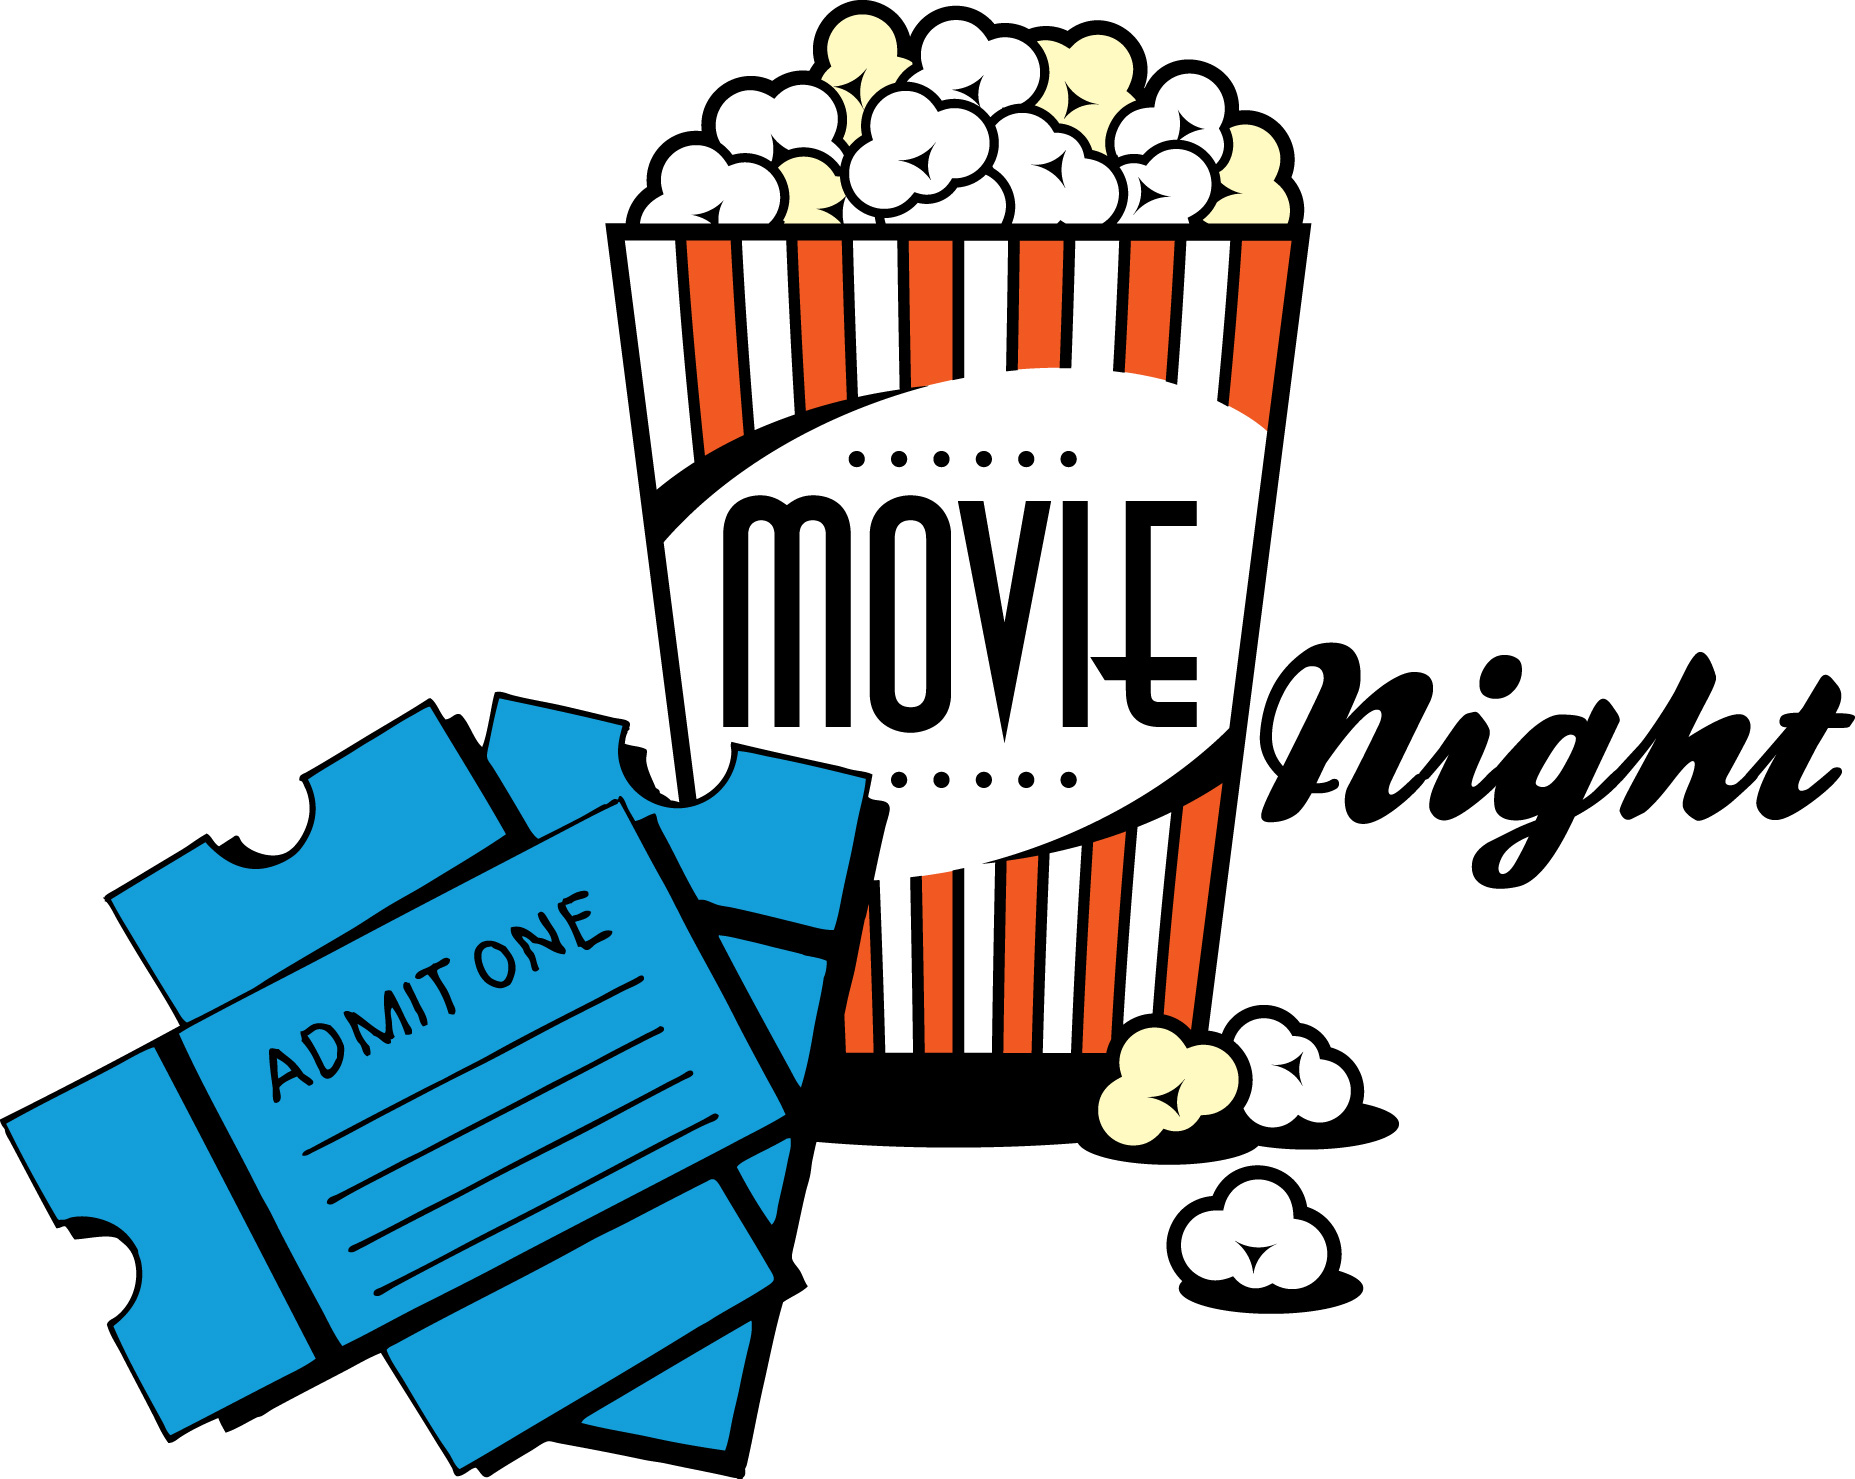 Movie Screen Clipart - Cliparts.co